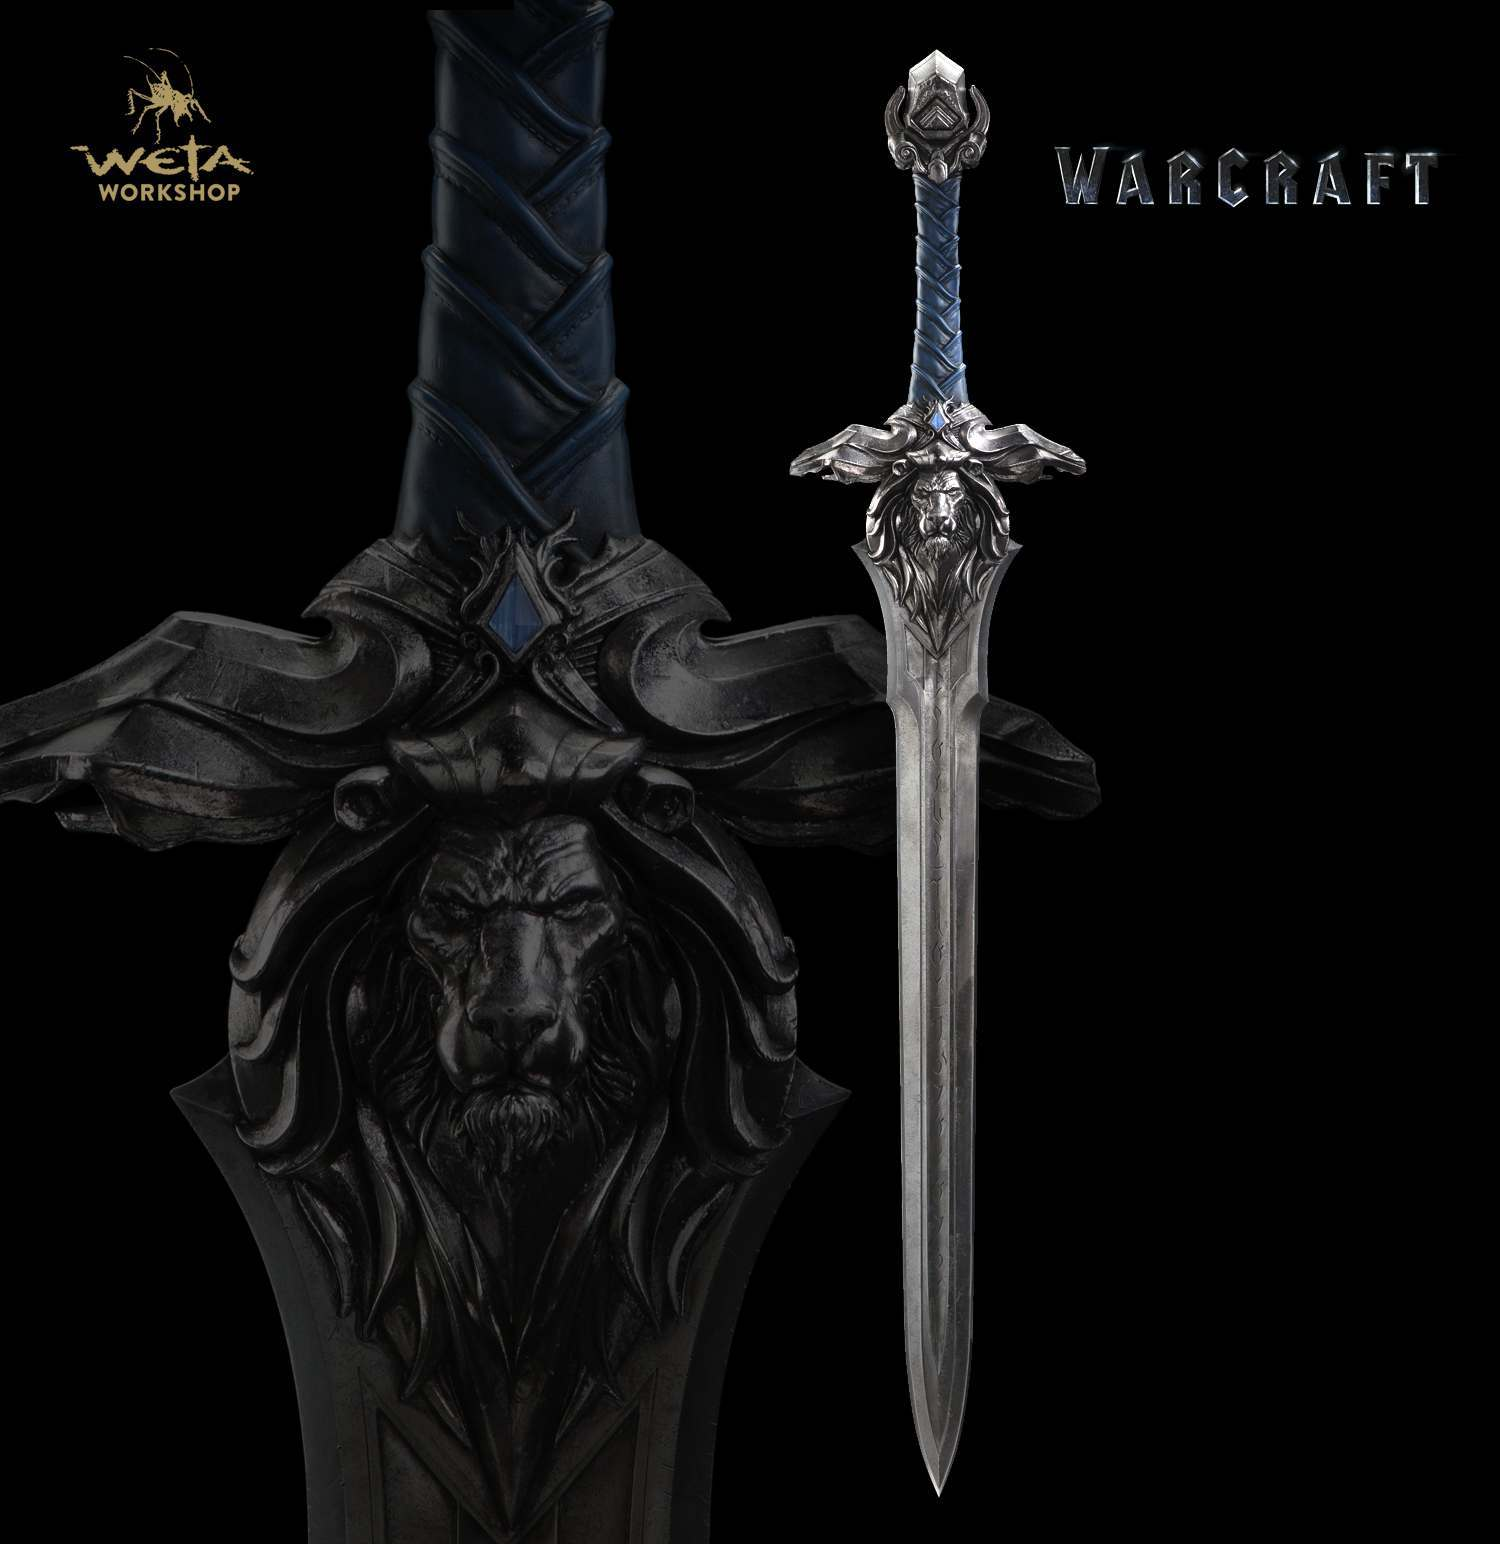 Warcraft Movie - 1:1 Scale Royal Guard Sword - Prop Replica image